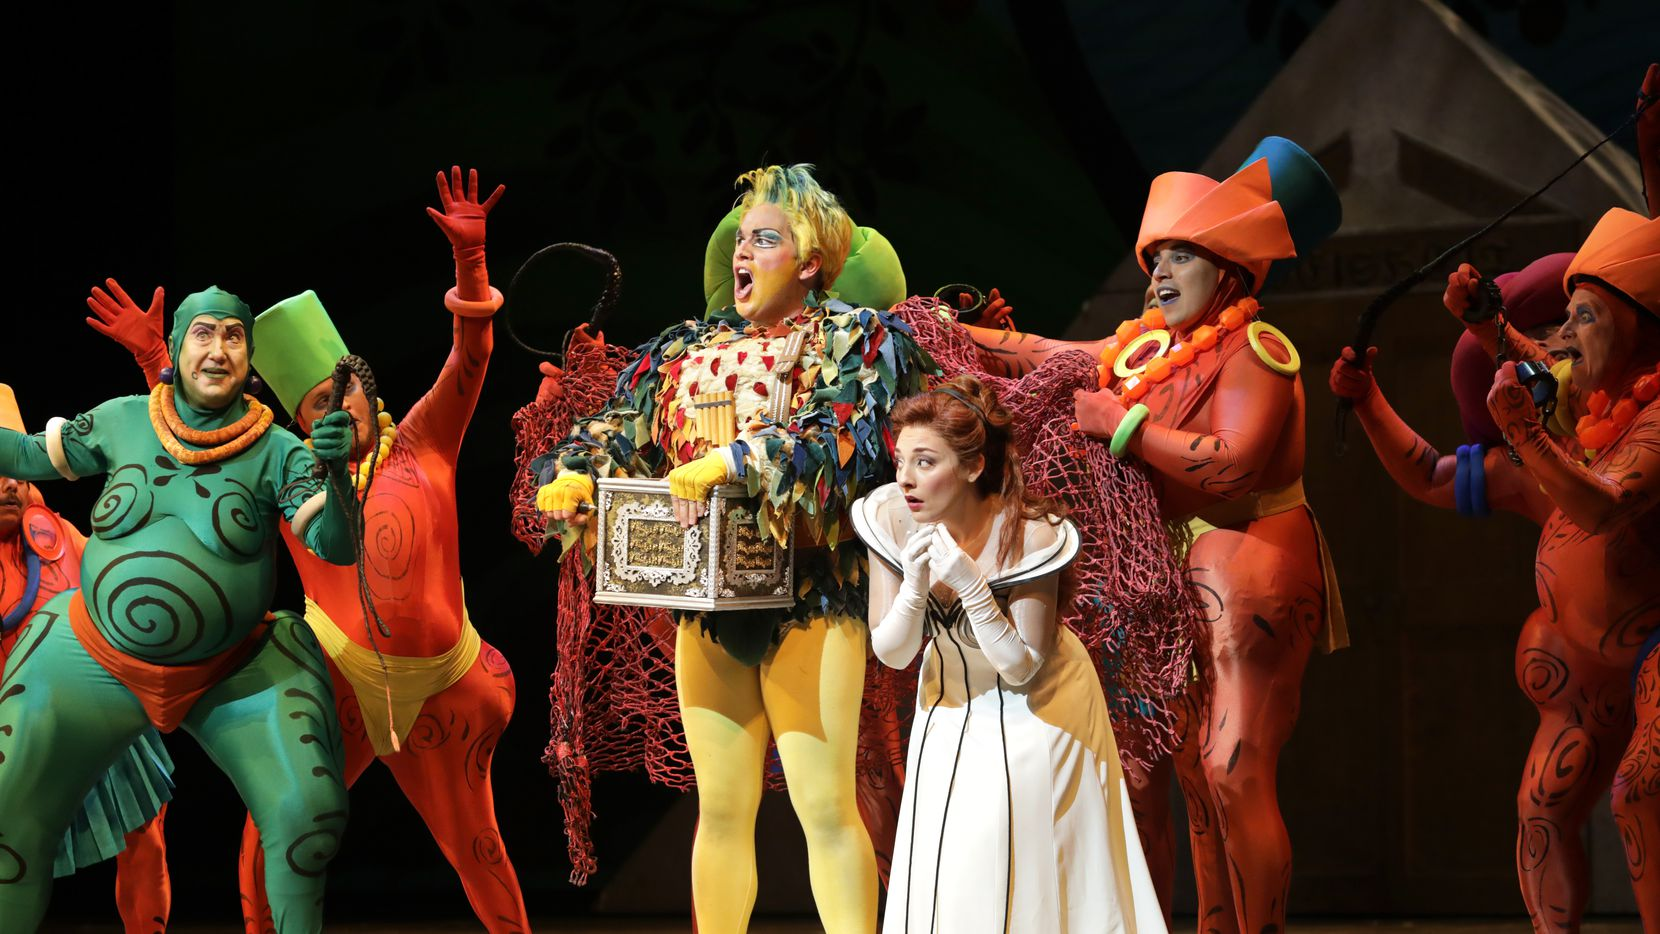 Dress rehearsal of the Dallas Opera's 'The Magic Flute,' at Winspear Opera House in Dallas, TX, on Oct. 15, 2019. In foreground, L to R, Brian Frutiger as Monostatos, Sean Michael Plumb as Papageno and Andrea Carroll as Pamina.